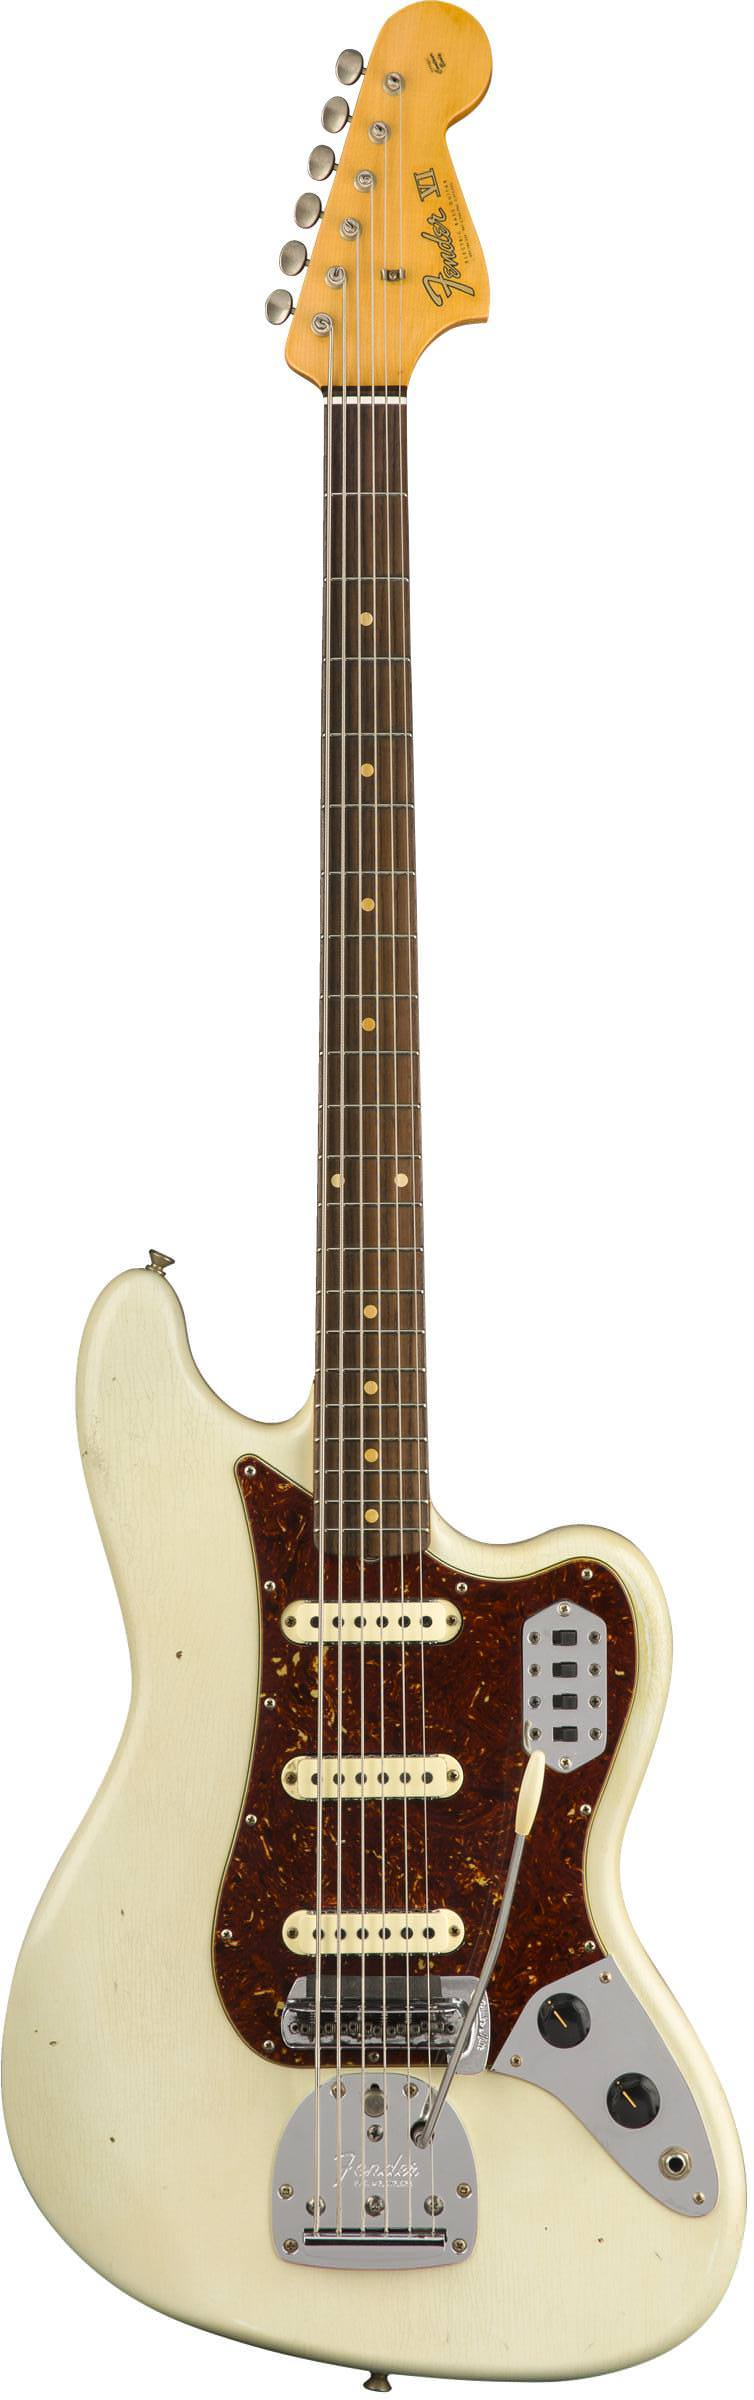 FENDER 2018 JOURNEYMAN RELIC® BASS VI - AGED OLYMPIC WHITE